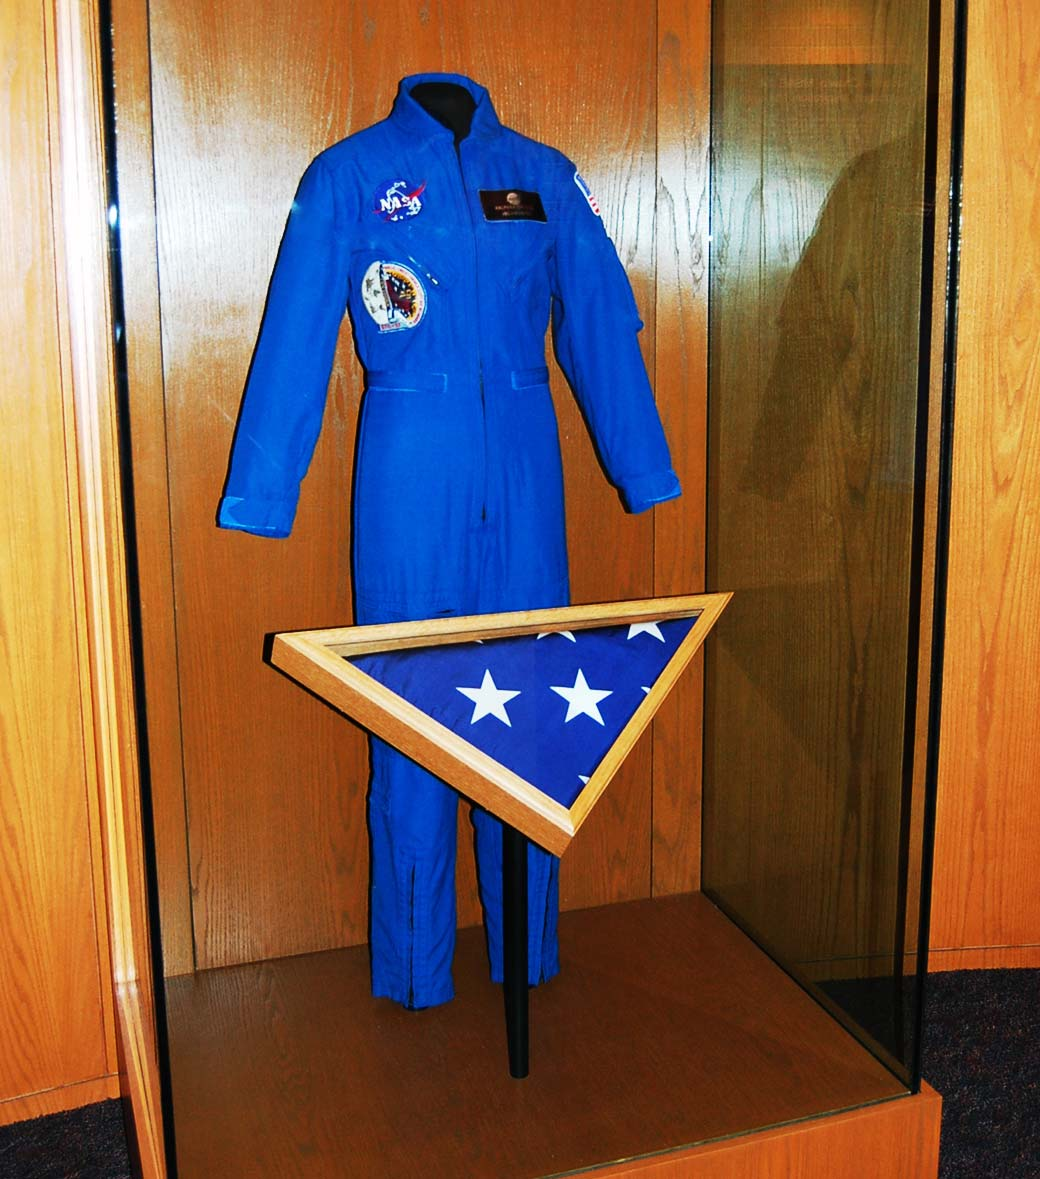 Chawla Suit and Flag